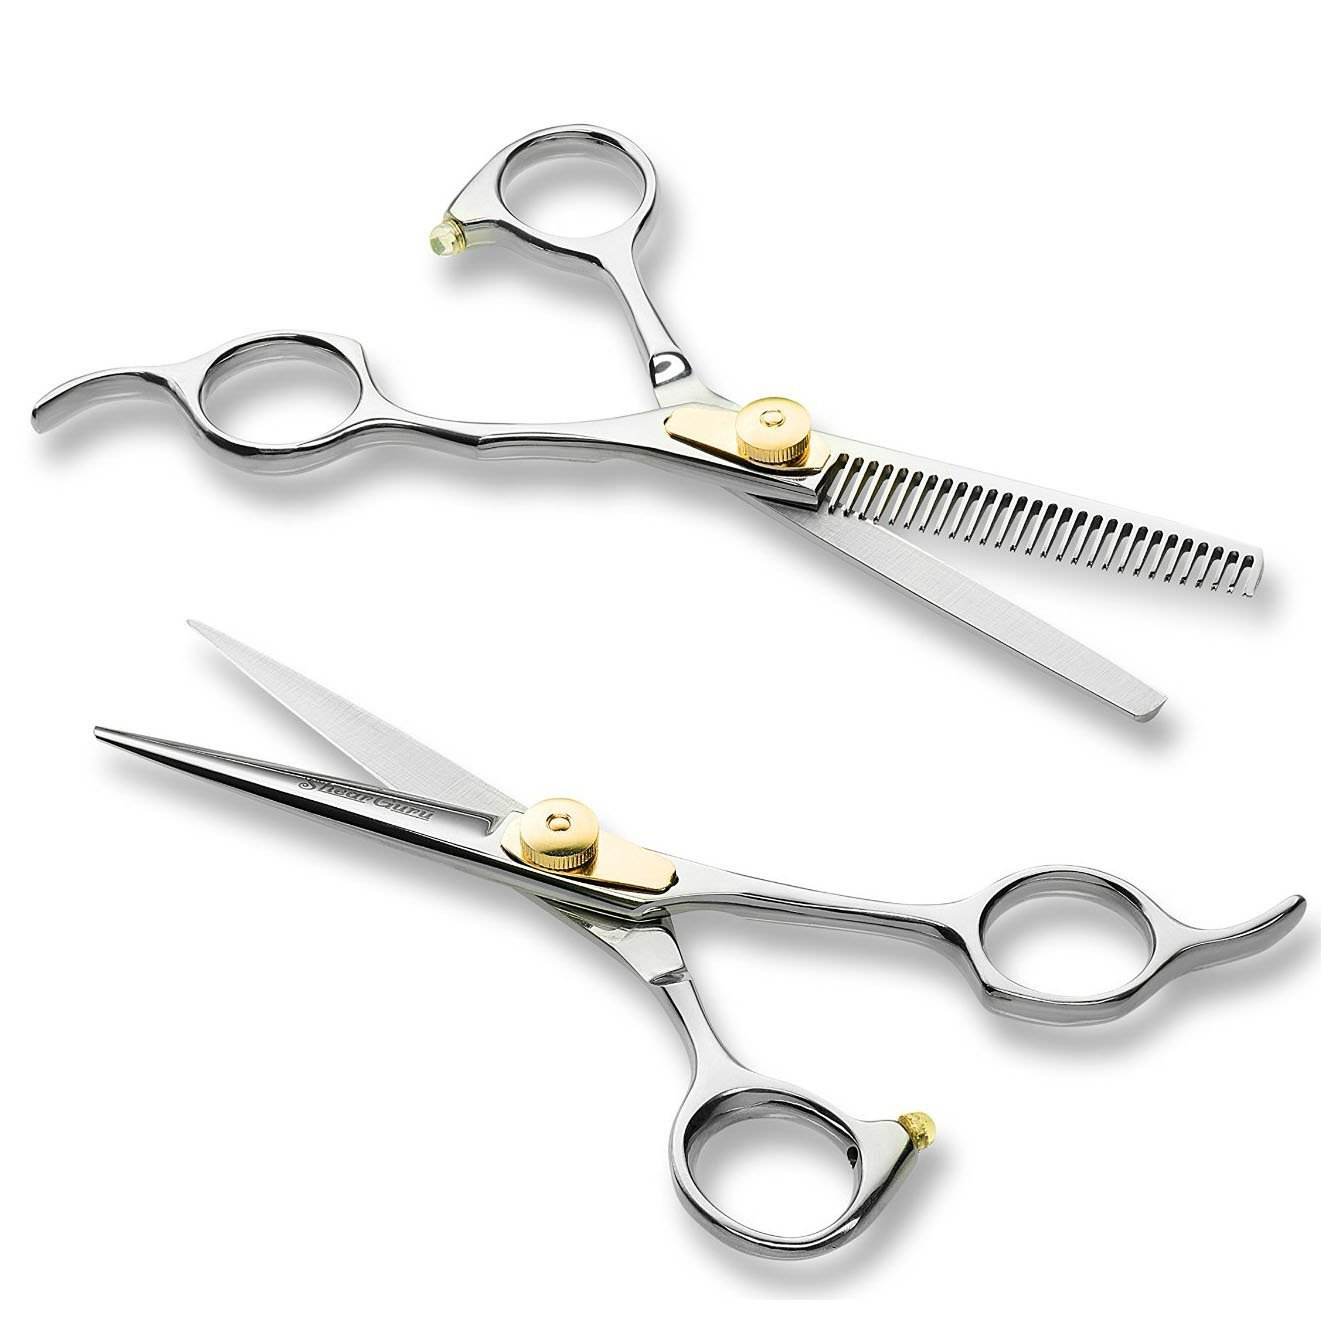 professional haircutting scissors shearguru professional barber scissor hair cutting set 6 5104